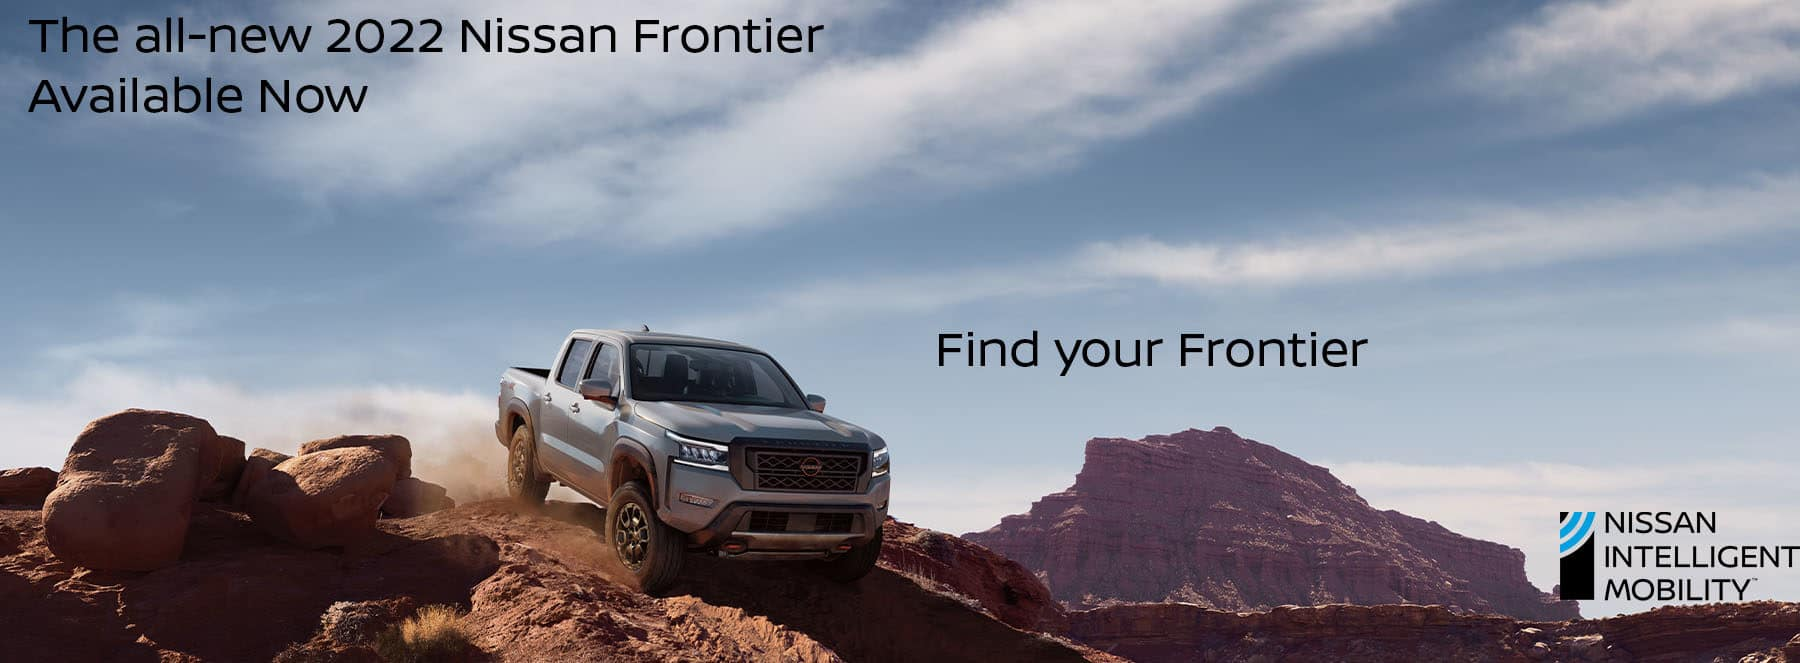 Nissan Frontier Call to Action copy